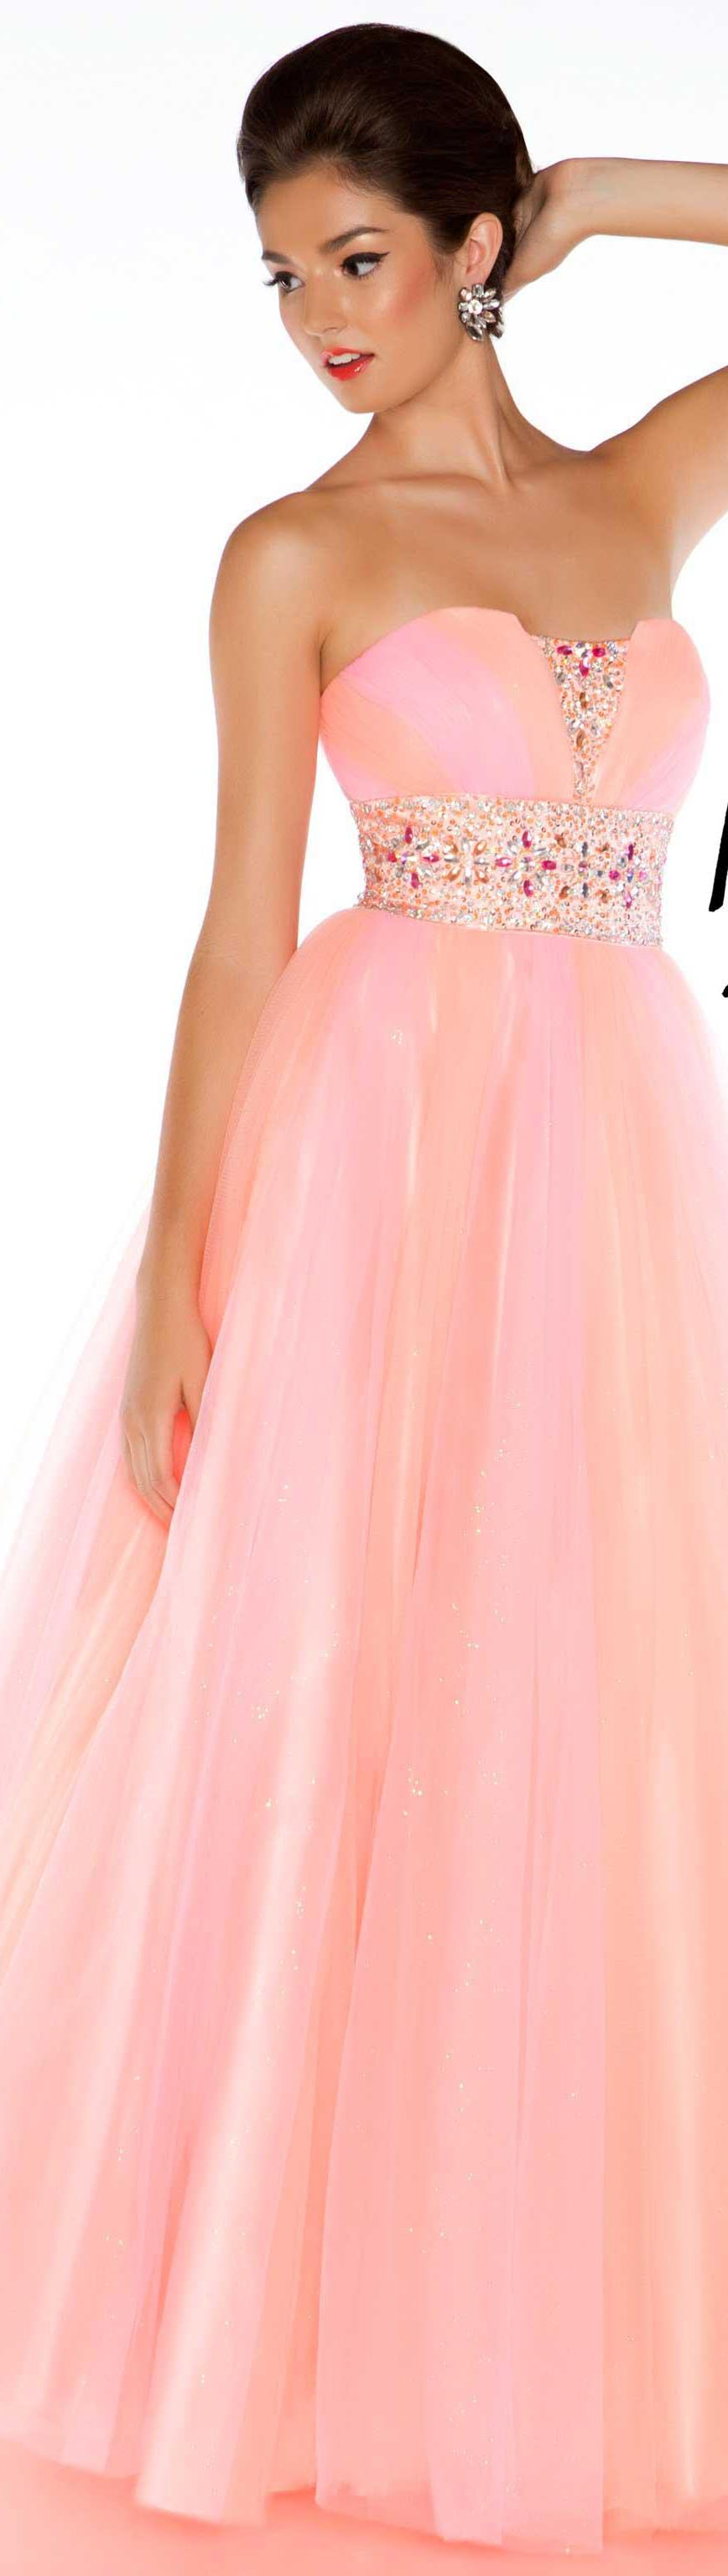 Soft Romantic Notions - Mac Duggal couture dress | Soft Romantic ...